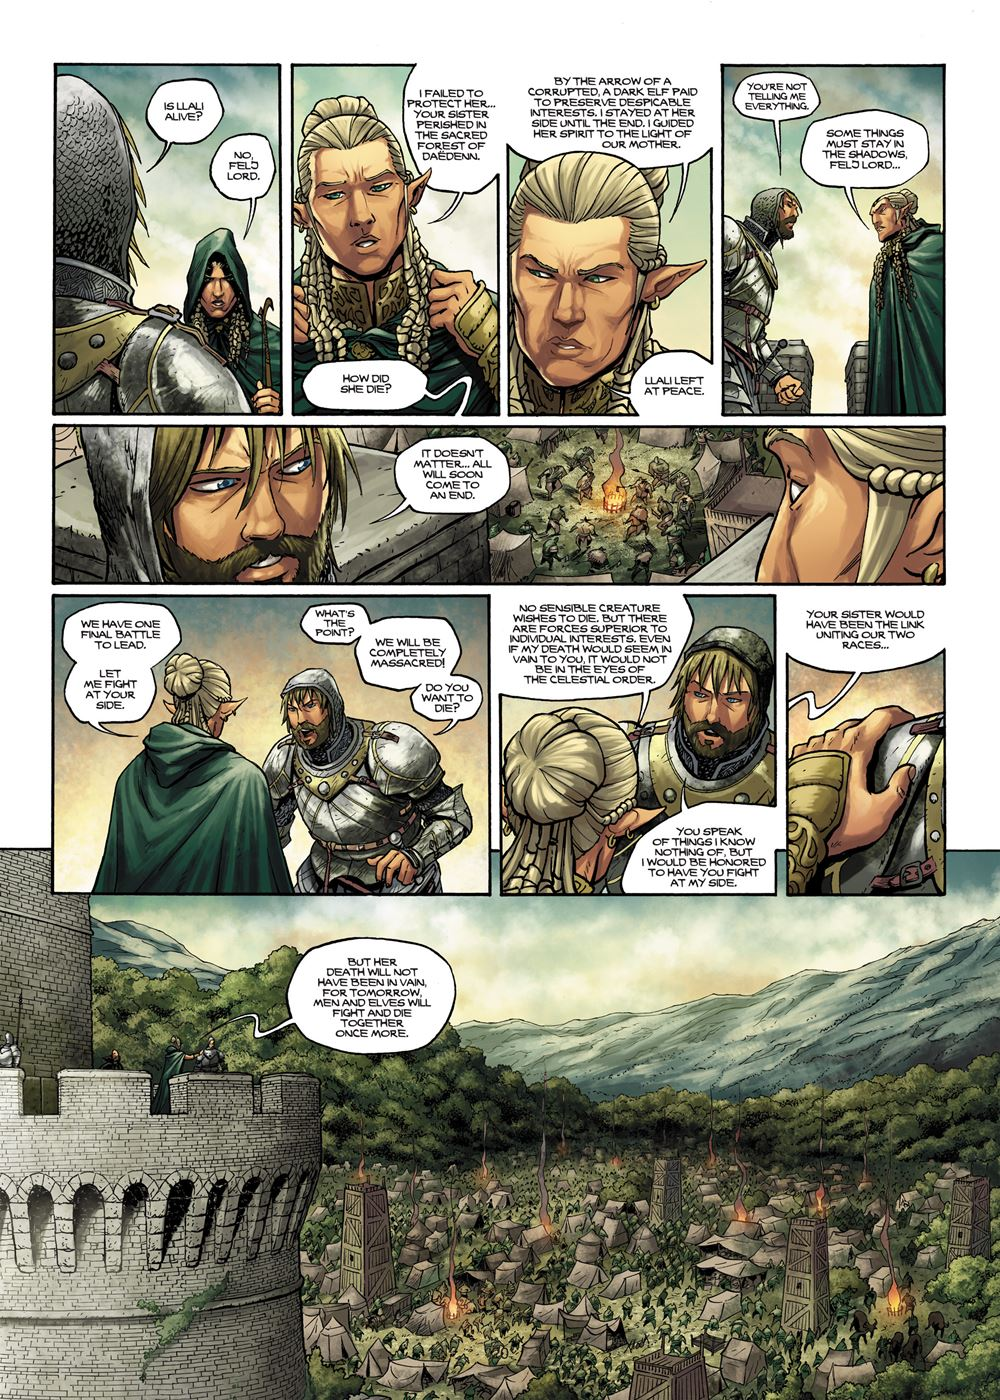 Elves 004 – The Honor of the Sylvan Elves 02 (of 2) (2015